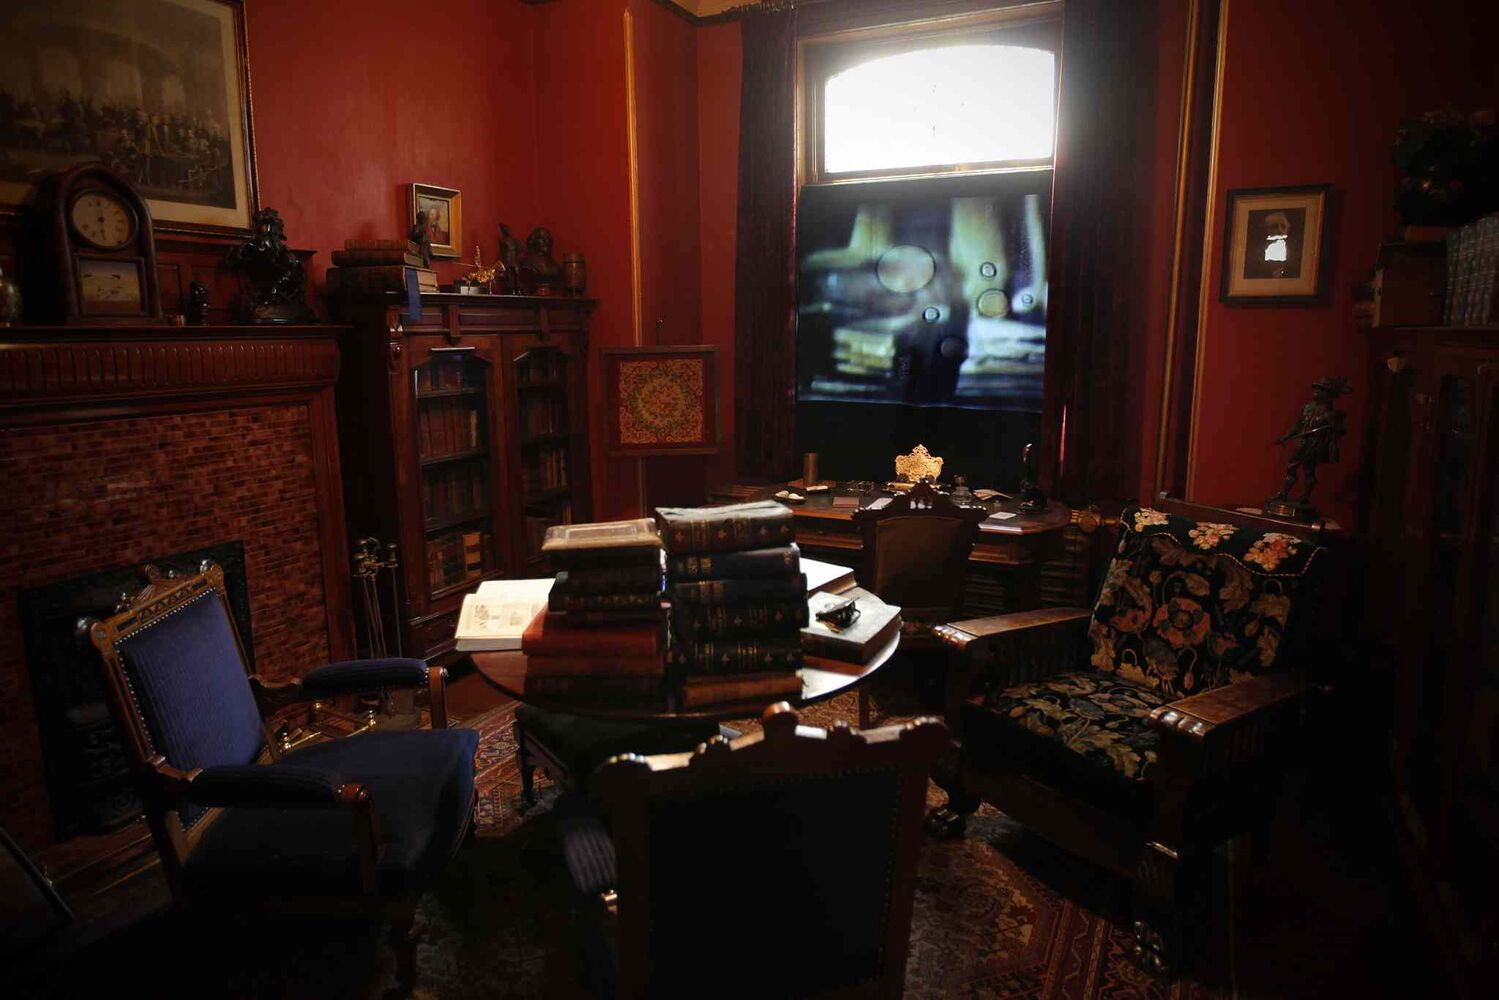 Winnipeg Stories: Sacrificial Memories by Clint Enns was part of a 2011 exhibit at Dalnavert called Phantasmagoria. The experimental film is made from discarded film footage found in thrift shops and flea markets in Winnipeg. (John Woods / Winnipeg Free Press archives)